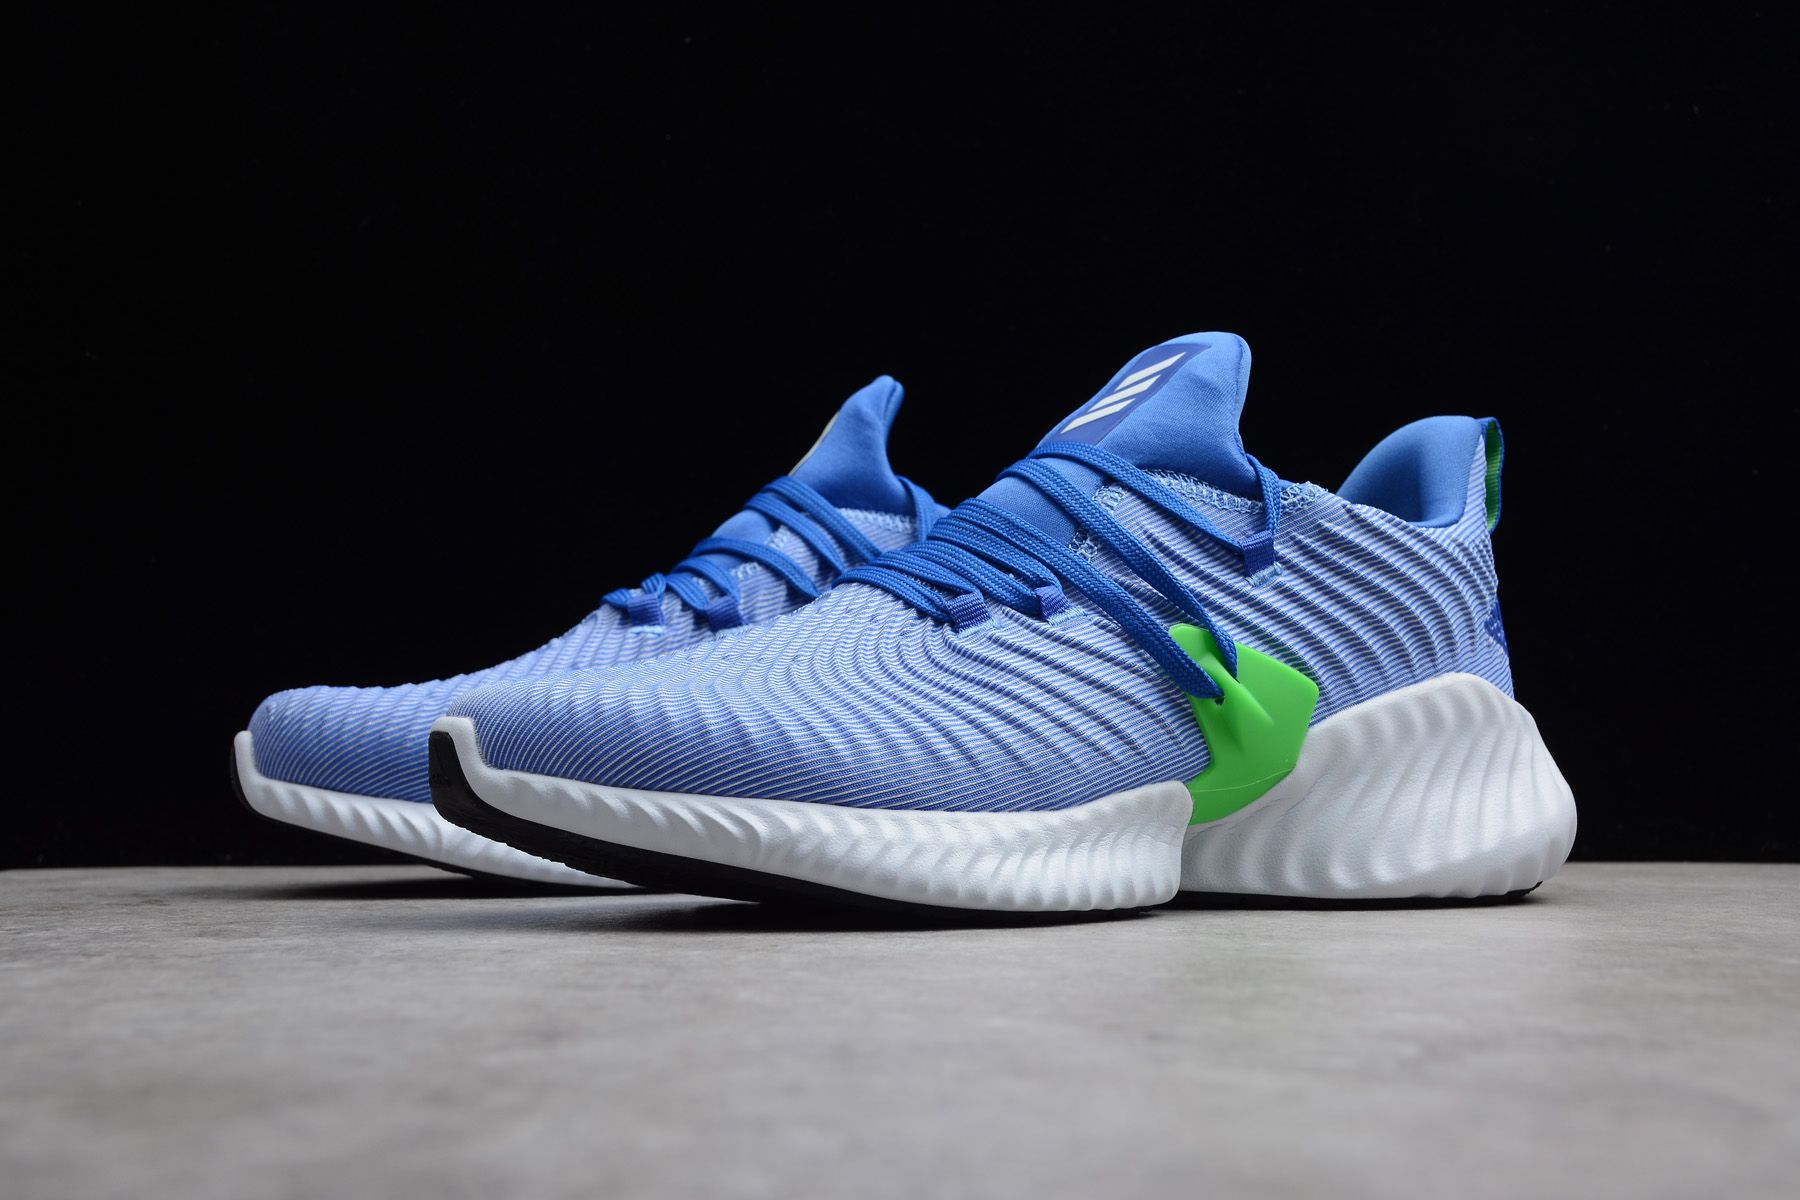 6856b72fcf2dce adidas AlphaBounce Instinct CC M Royal Blue Grey-White B42271 ...